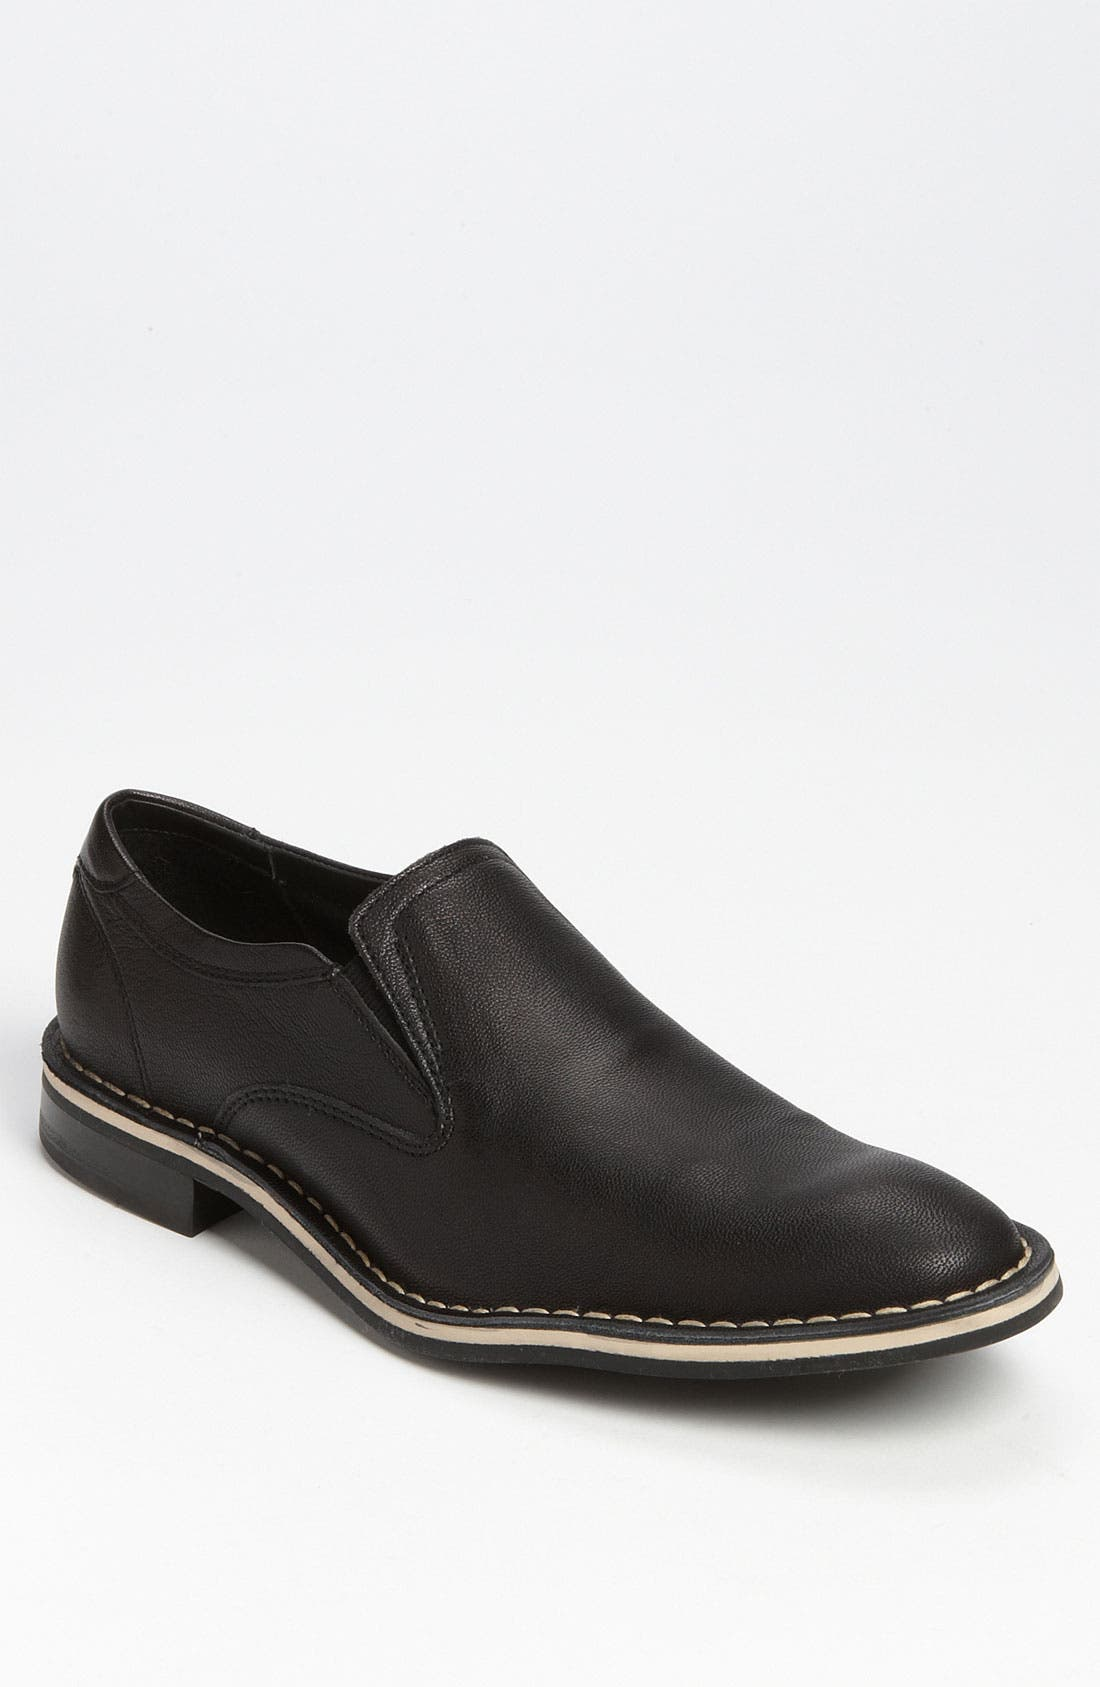 Main Image - Cole Haan 'Air Stratton' Slip-On